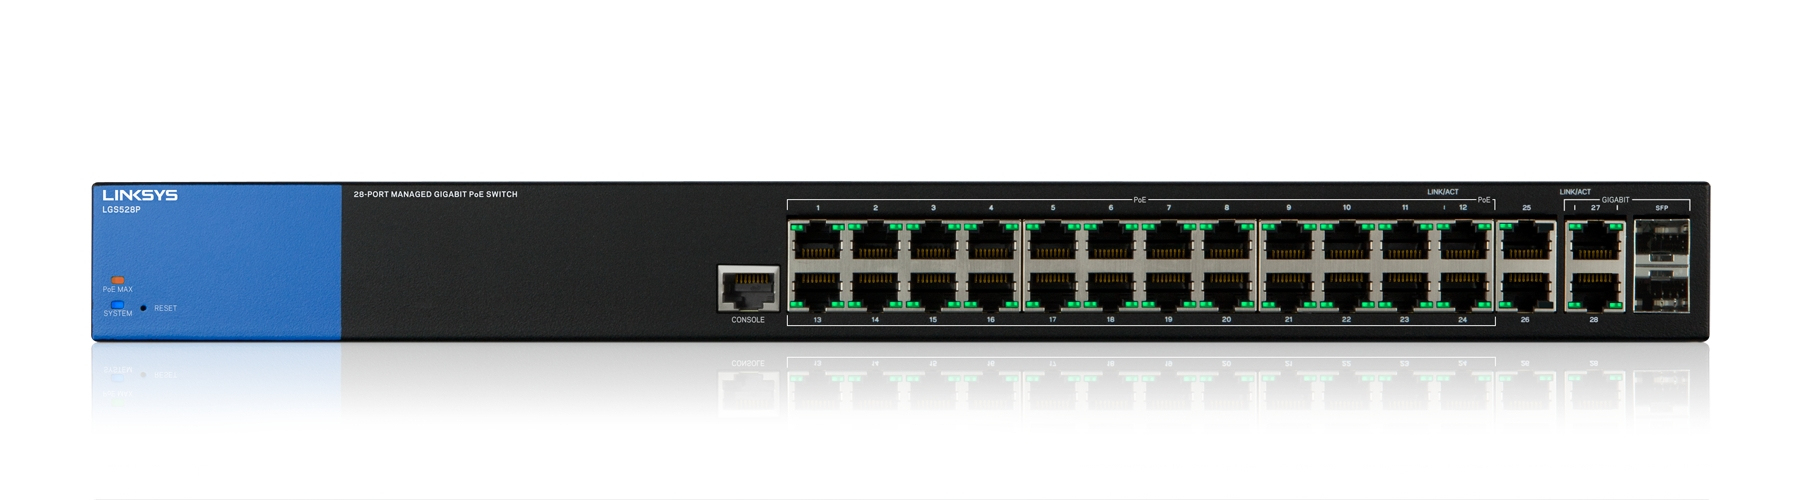 LINKSYS 28-PORT MANAGED POE+ GIGABIT SWITCH (LGS528P)